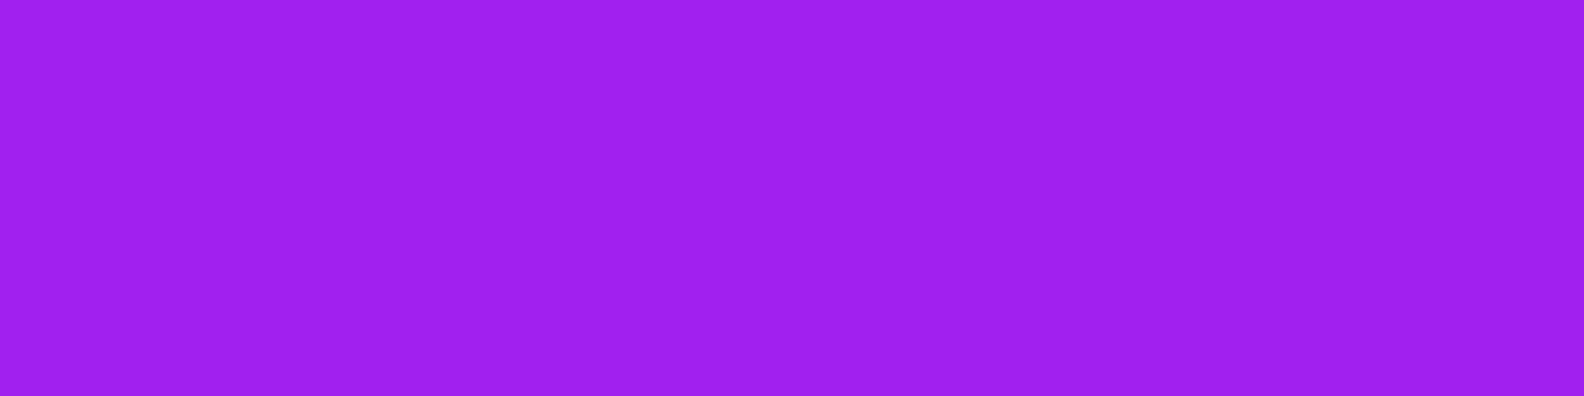 1584x396 Purple X11 Gui Solid Color Background